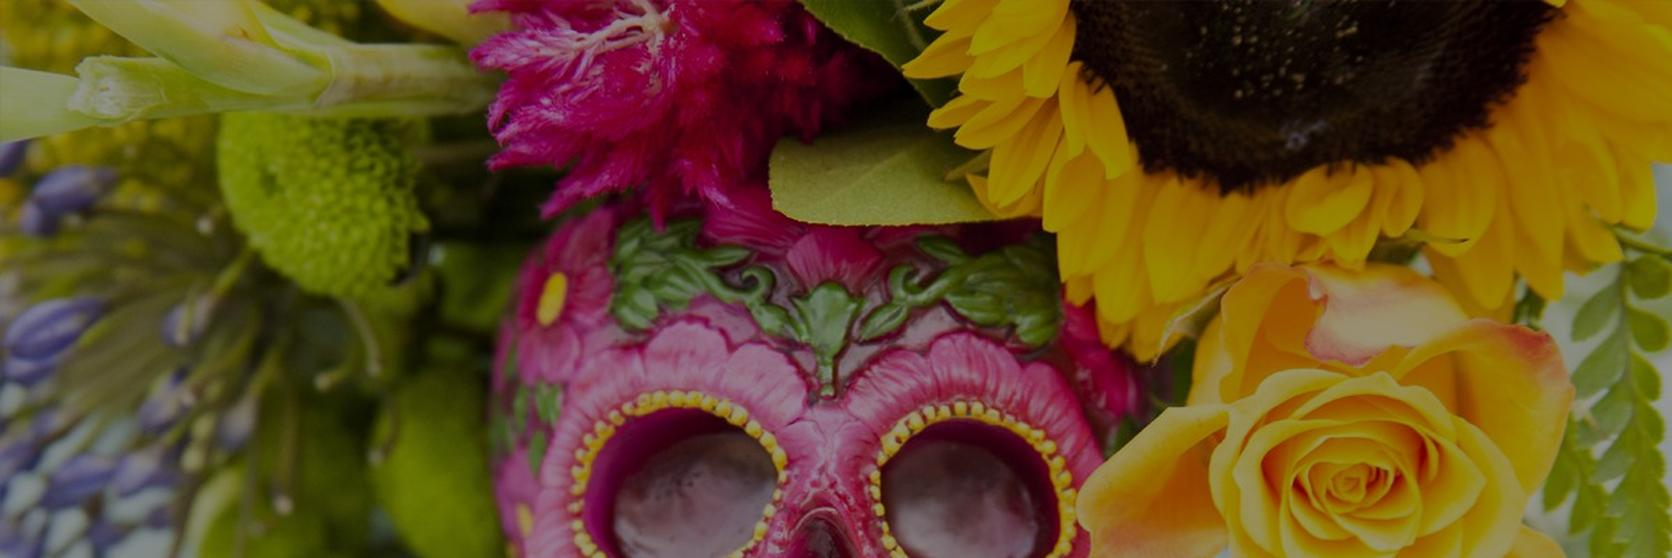 6-things-you-didnt-know-about-the-day-of-the-dead header